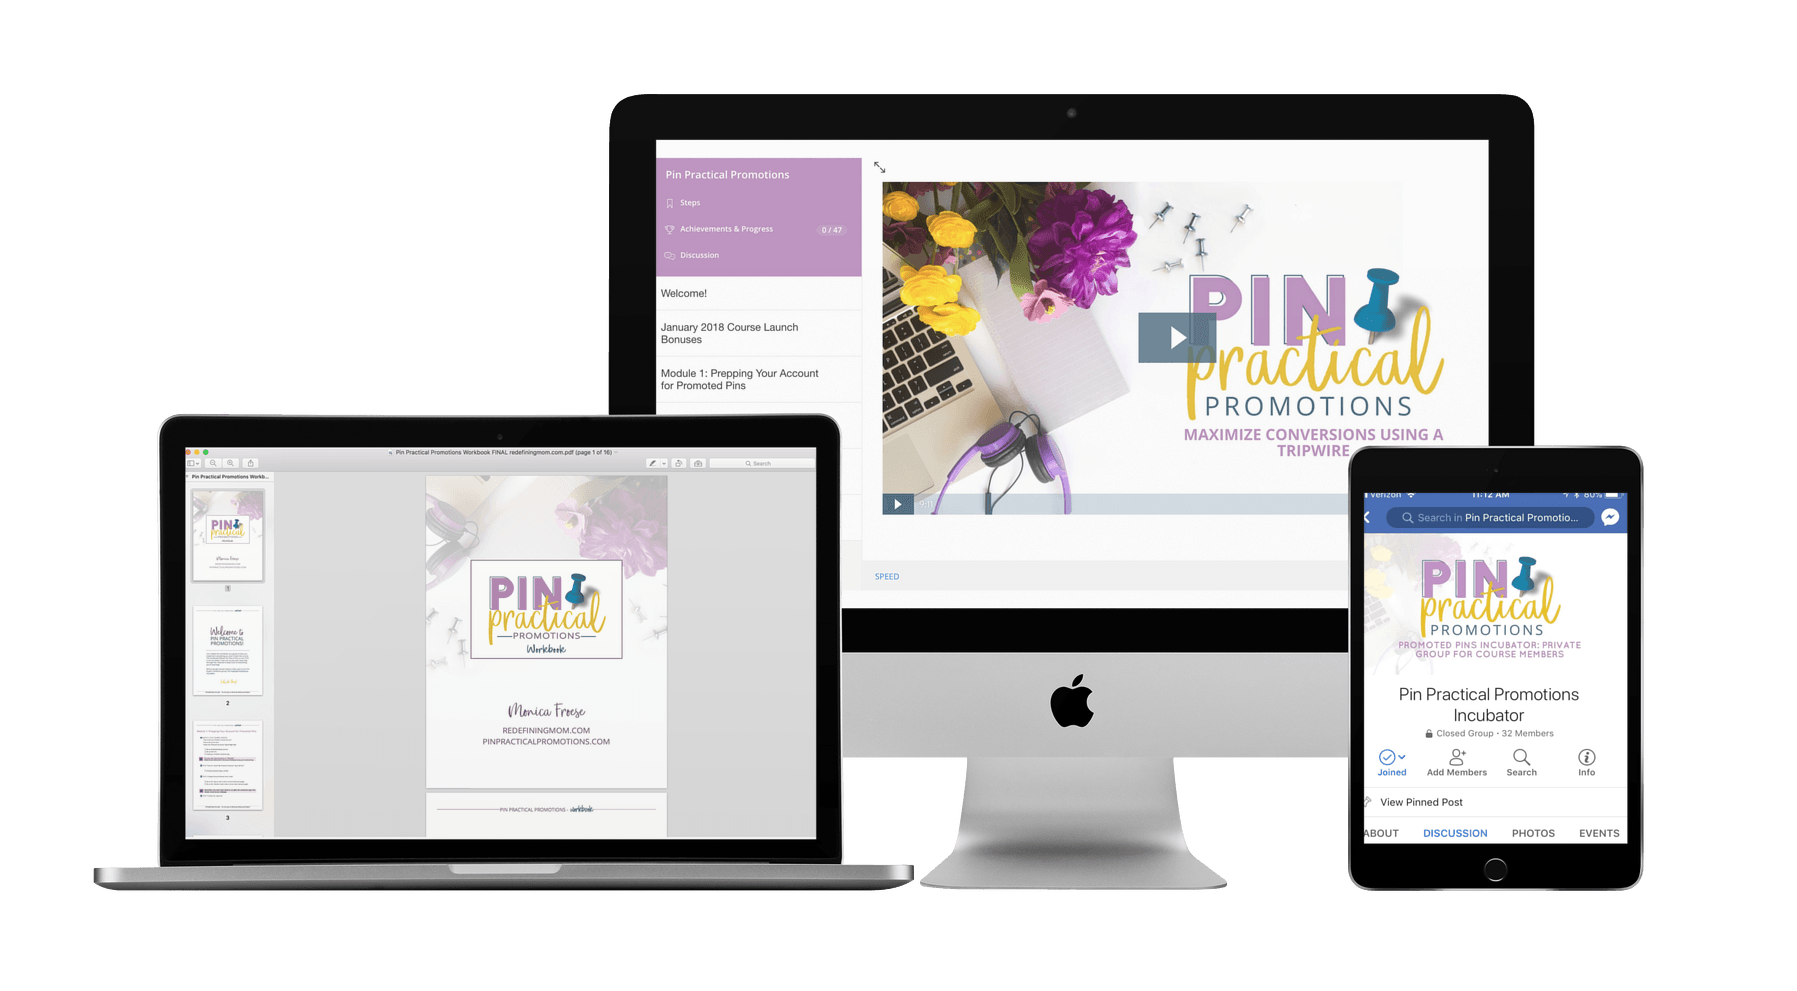 Pin Practical Promotions is an advanced-level Pinterest ads course on how to strategize, implement, analyze, and refine low-cost promoted pin campaigns.